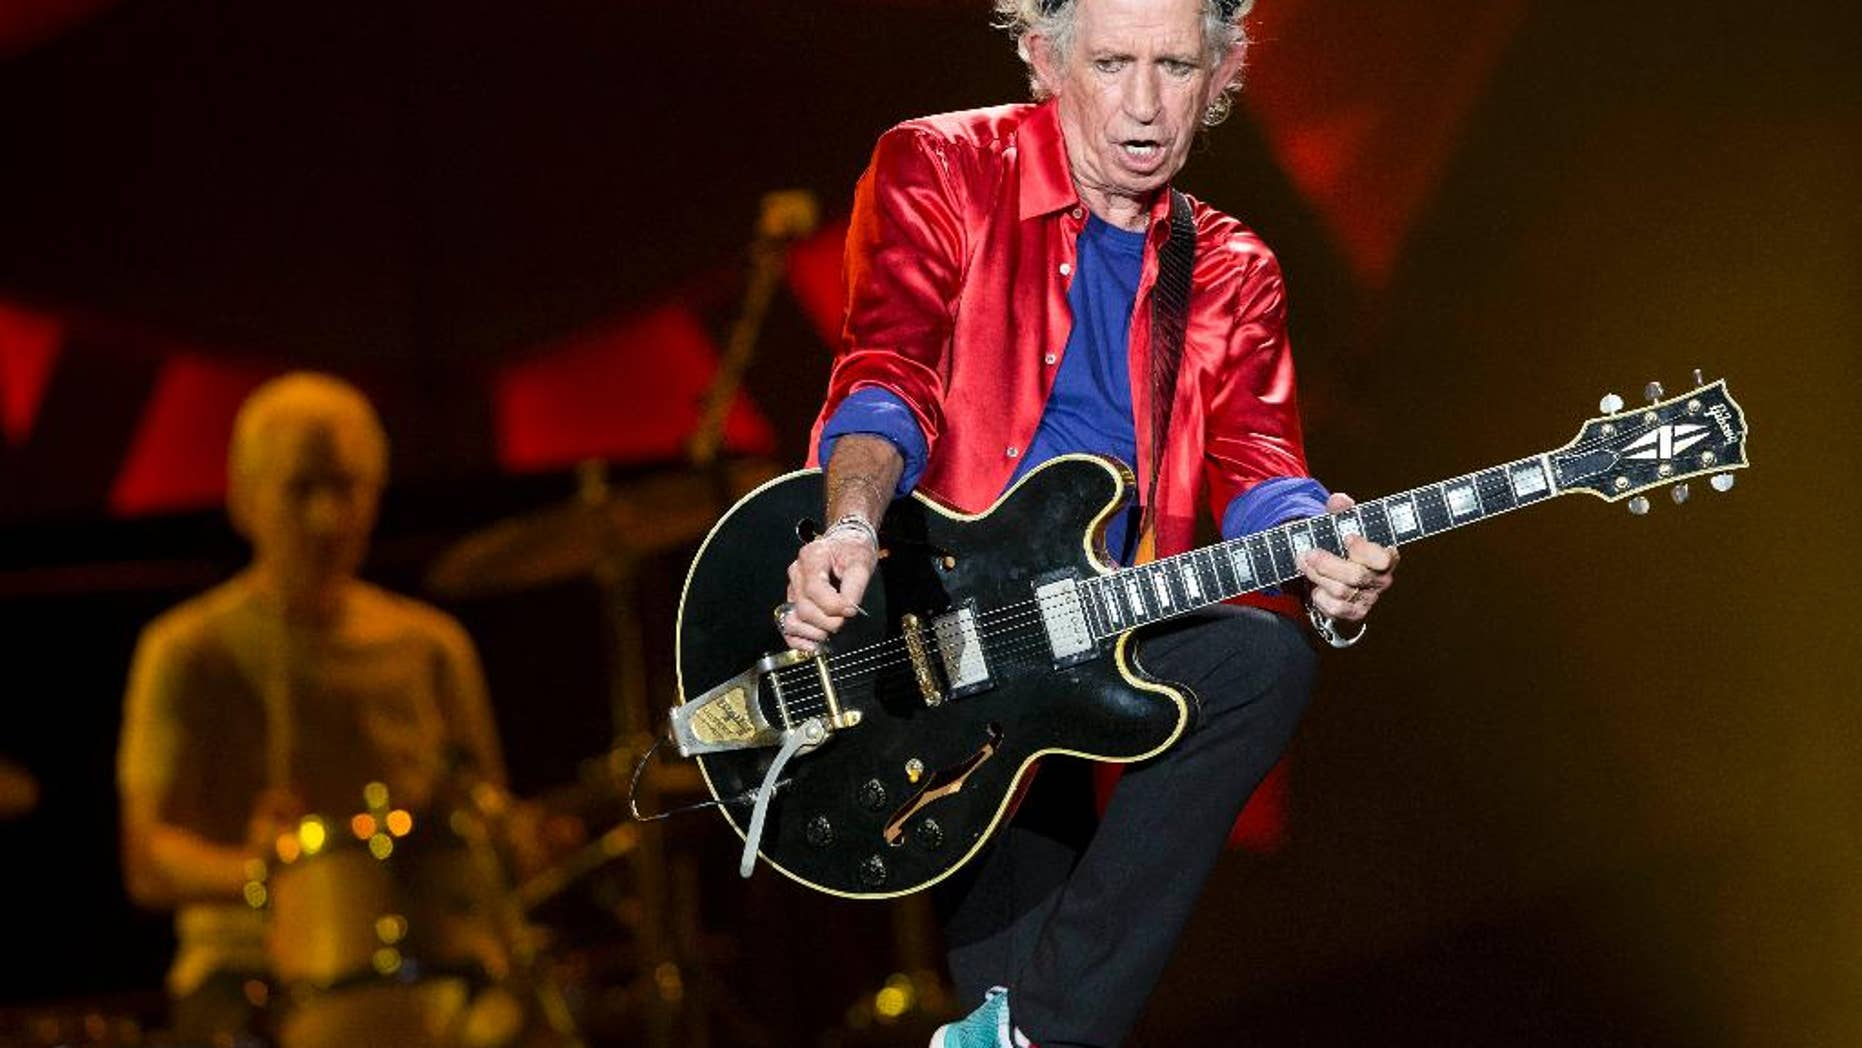 """In this Tuesday, June 9, 2015, file photo, the Rolling Stones' Keith Richards, foreground, and Charlie Watts, background on drums, perform at Bobby Dodd Stadium on the Georgia Tech campus, in Atlanta. Richards announced, Thursday, July 9, 2015, that he will release a new solo album, his first in 20 years, entitled """"Crosseyed Heart,"""" on Sept. 18, 2015. (AP)"""